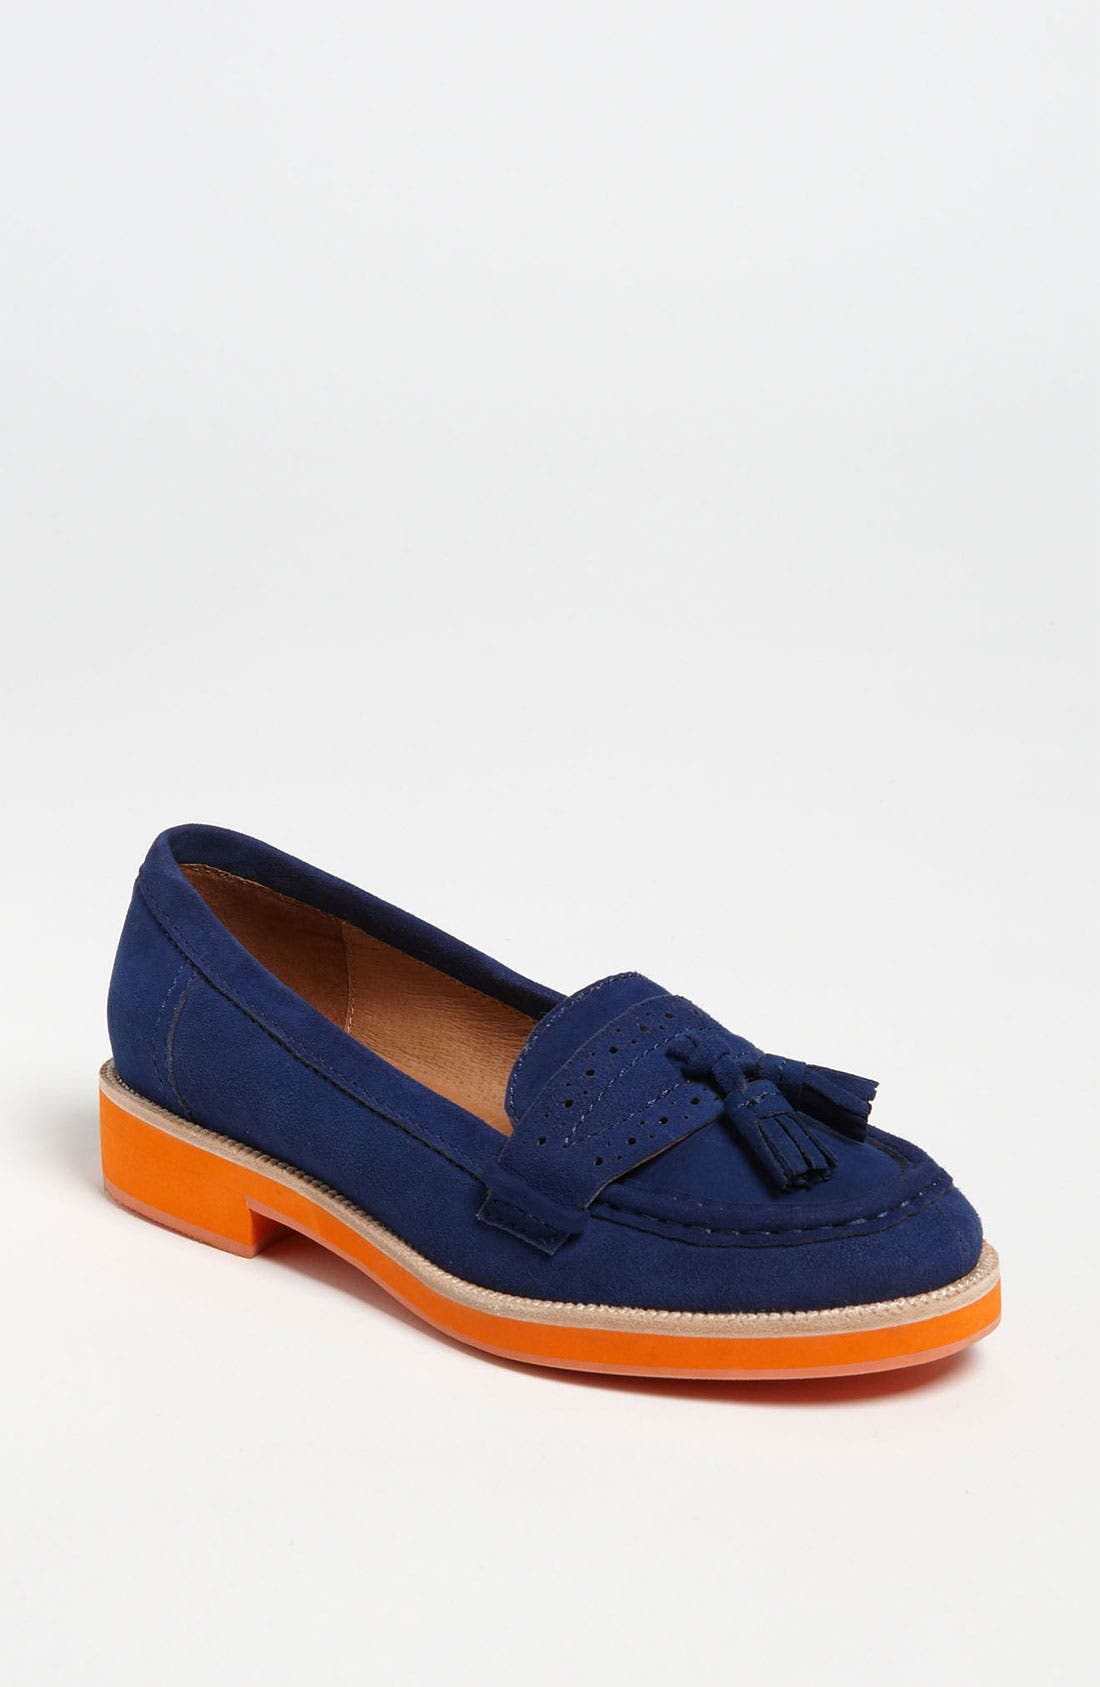 Main Image - Jeffrey Campbell 'Prep' Loafer